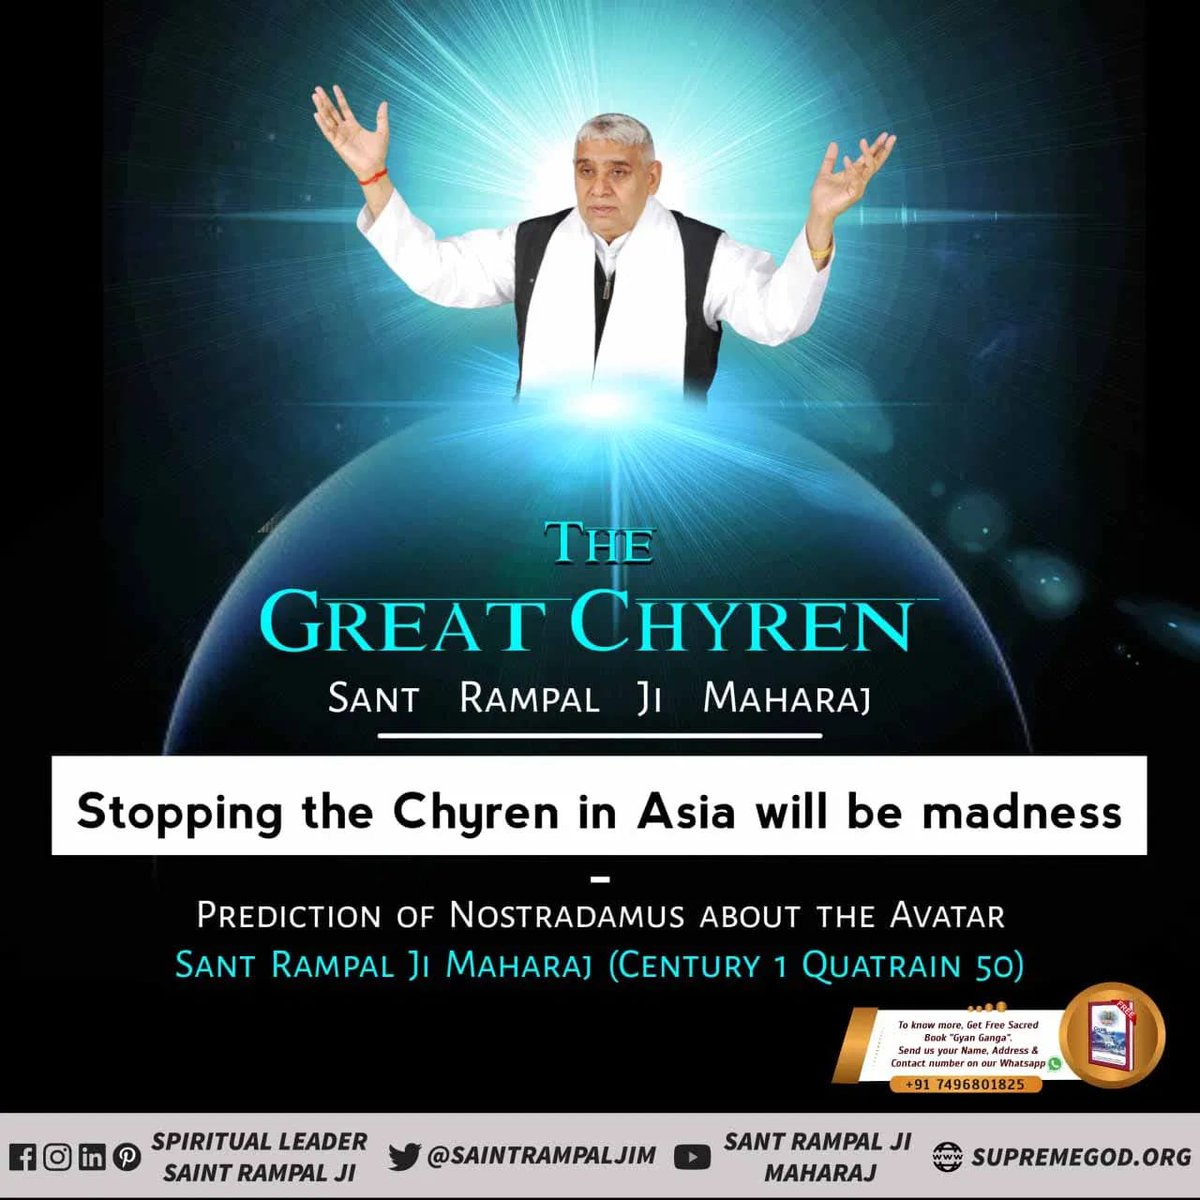 #GodMorningFriday   DIVINE GREATMAN OF INDIA  PROPHECY OF PROFESSOR HARARE OF ISRAEL ABOUT SAINT RAMPAL JI MAHARAJ  AFTER 1998, A POWERFUL RELIGIOUS ORGANISATION WOULD COME TO LIGHT IN INDIA. @SaintRampalJiM  Visit Satlok Ashram YouTube Channel #fridaymorning #FridayMotivation